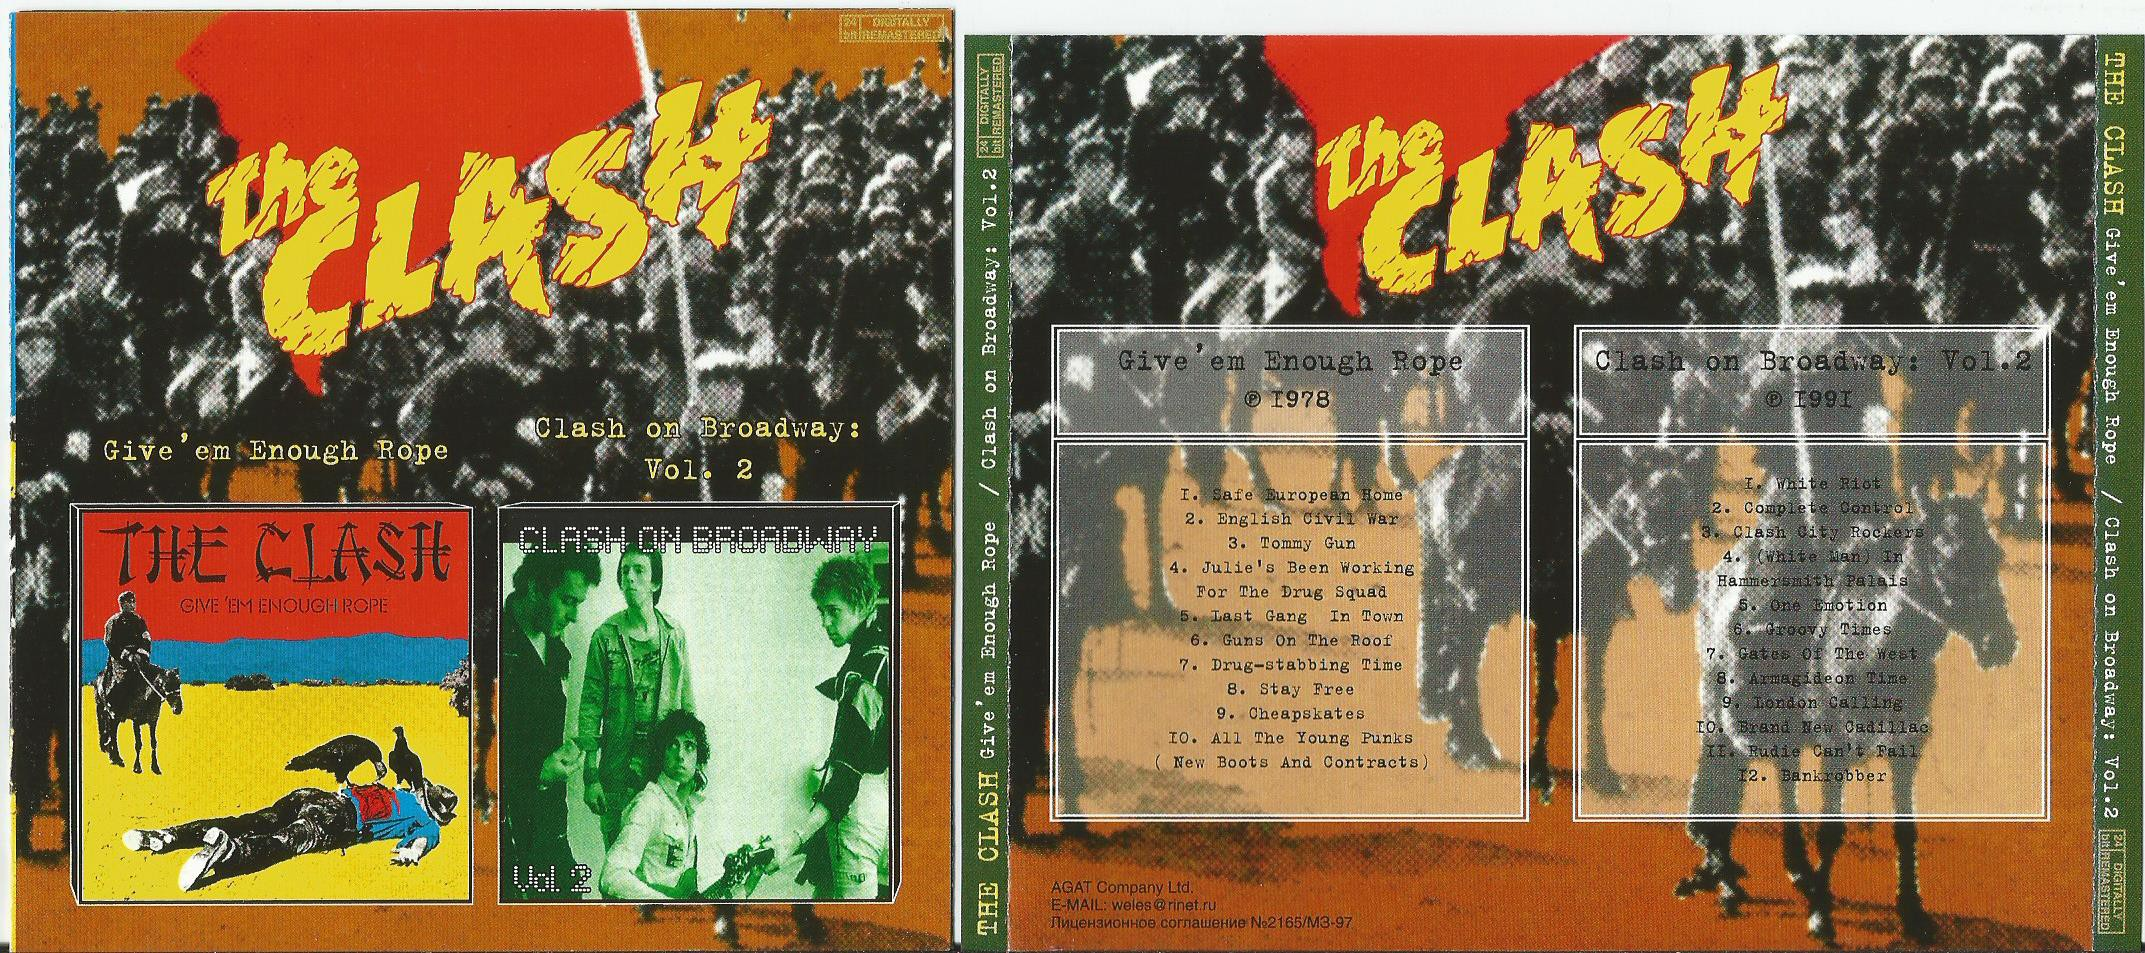 Give 'em enough rope/ clash on broadway, vol  2 (2 in 1cd) by Clash, CD  with apexmusic